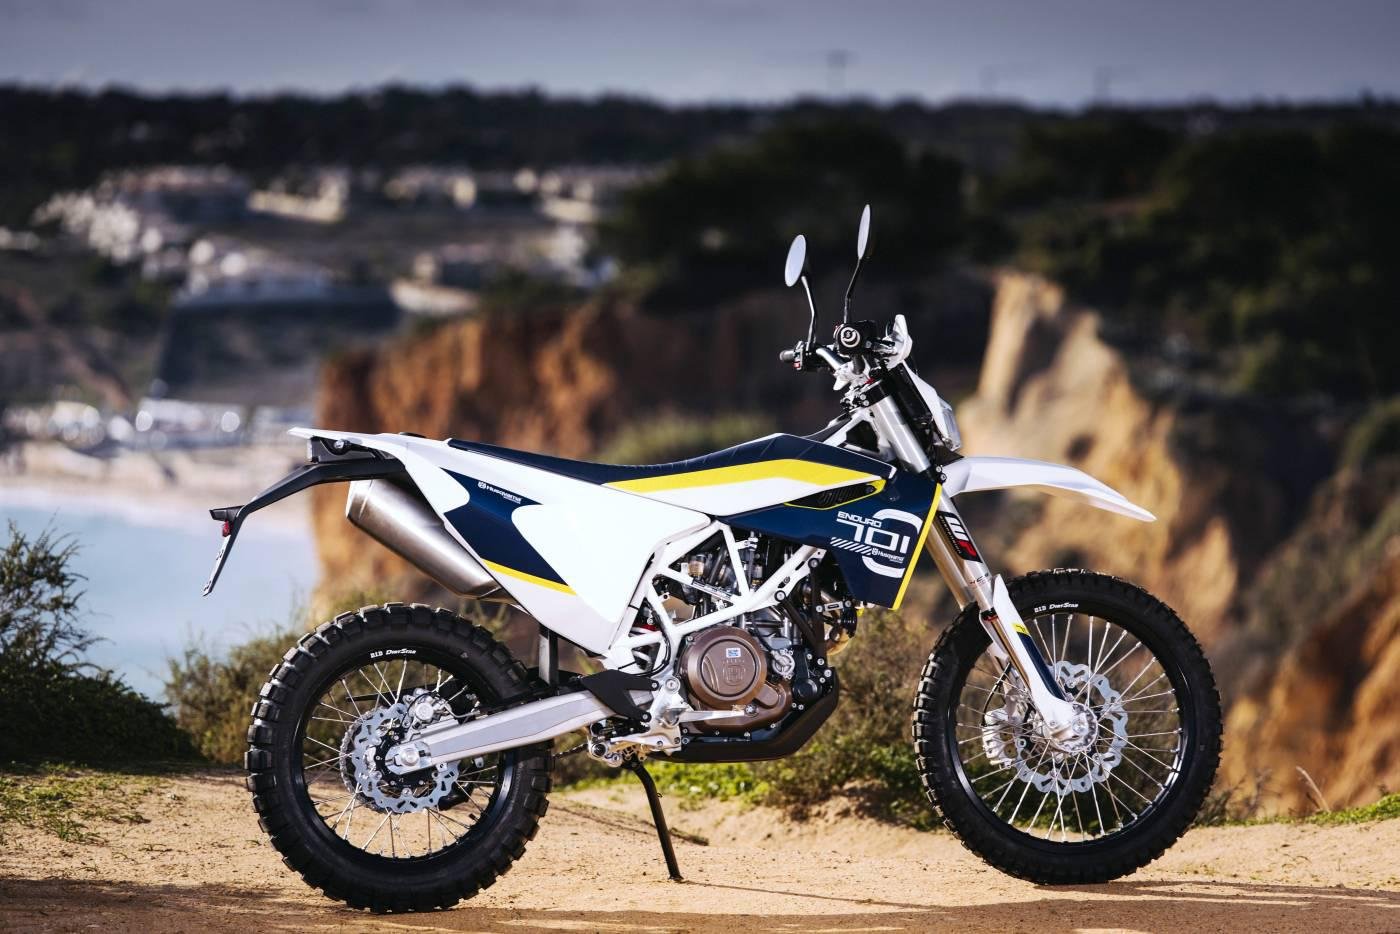 husqvarna 701 enduro test action details zubeh r motorrad fotos motorrad bilder. Black Bedroom Furniture Sets. Home Design Ideas